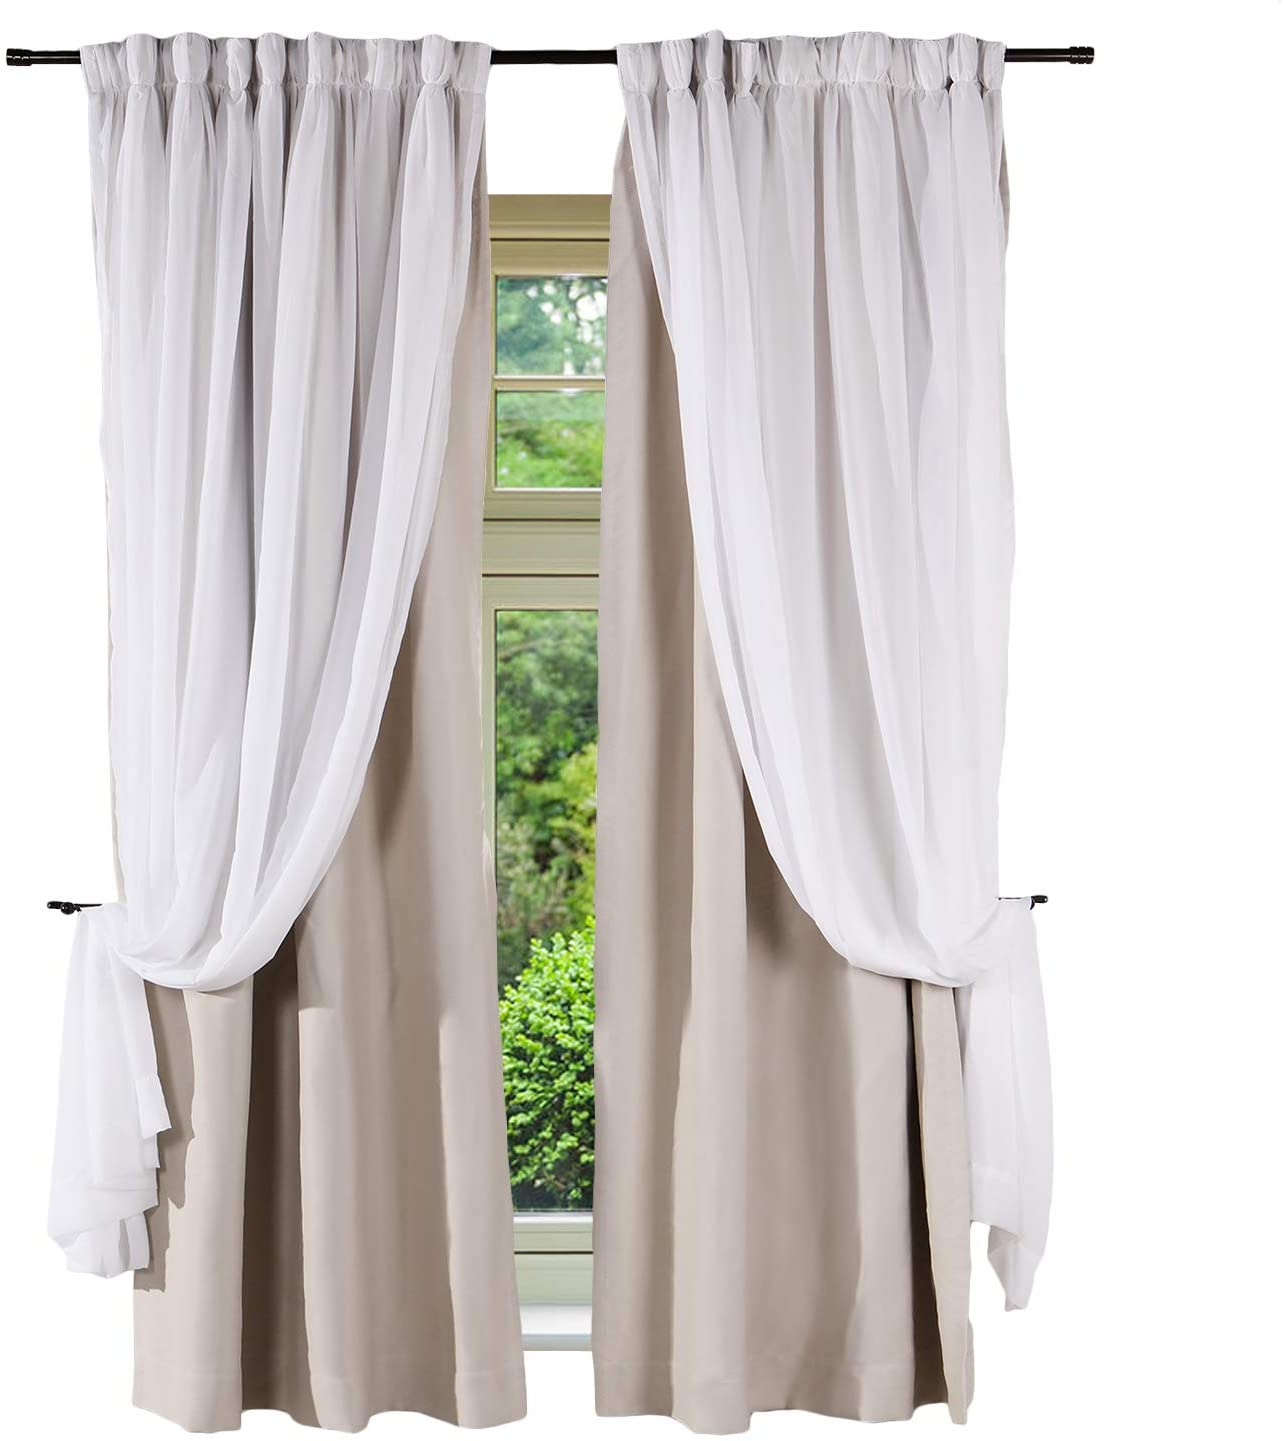 Frelement Room Darkening Curtains Sheer and Blackout Curtain 2 Layer Curtains Back Tab Thermal Insulated Drape Flat Hooks 2 in 1 Heading Curtains for Bedroom Kids Room 50 W x 96 L, Beige, 1 Panel